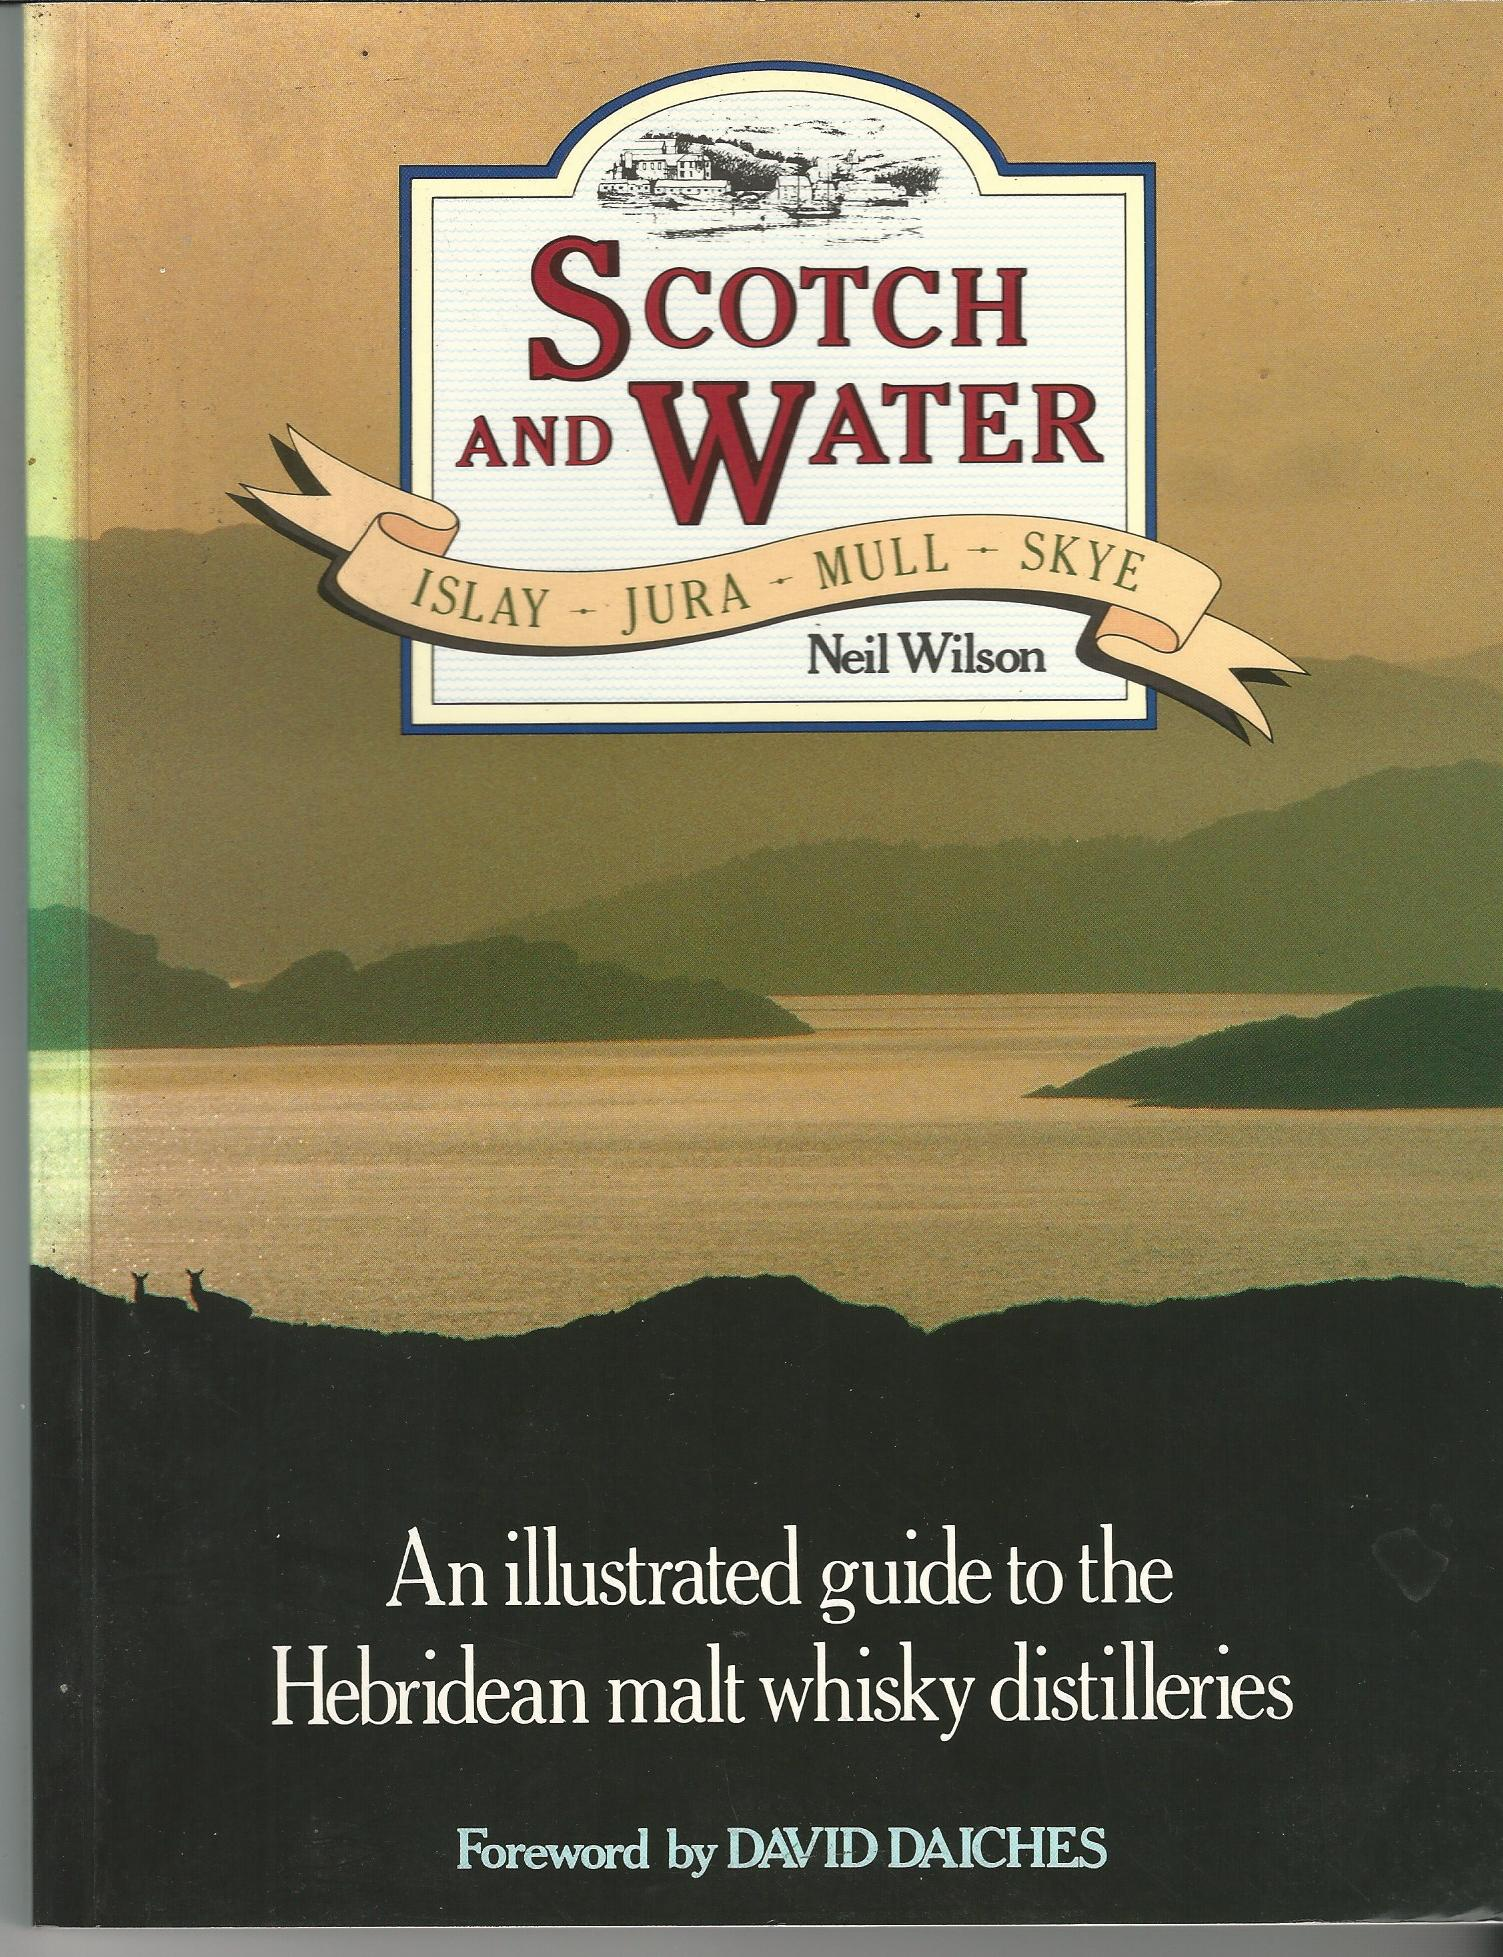 Image for Scotch and Water: Islay, Jura, Mull, Skye.